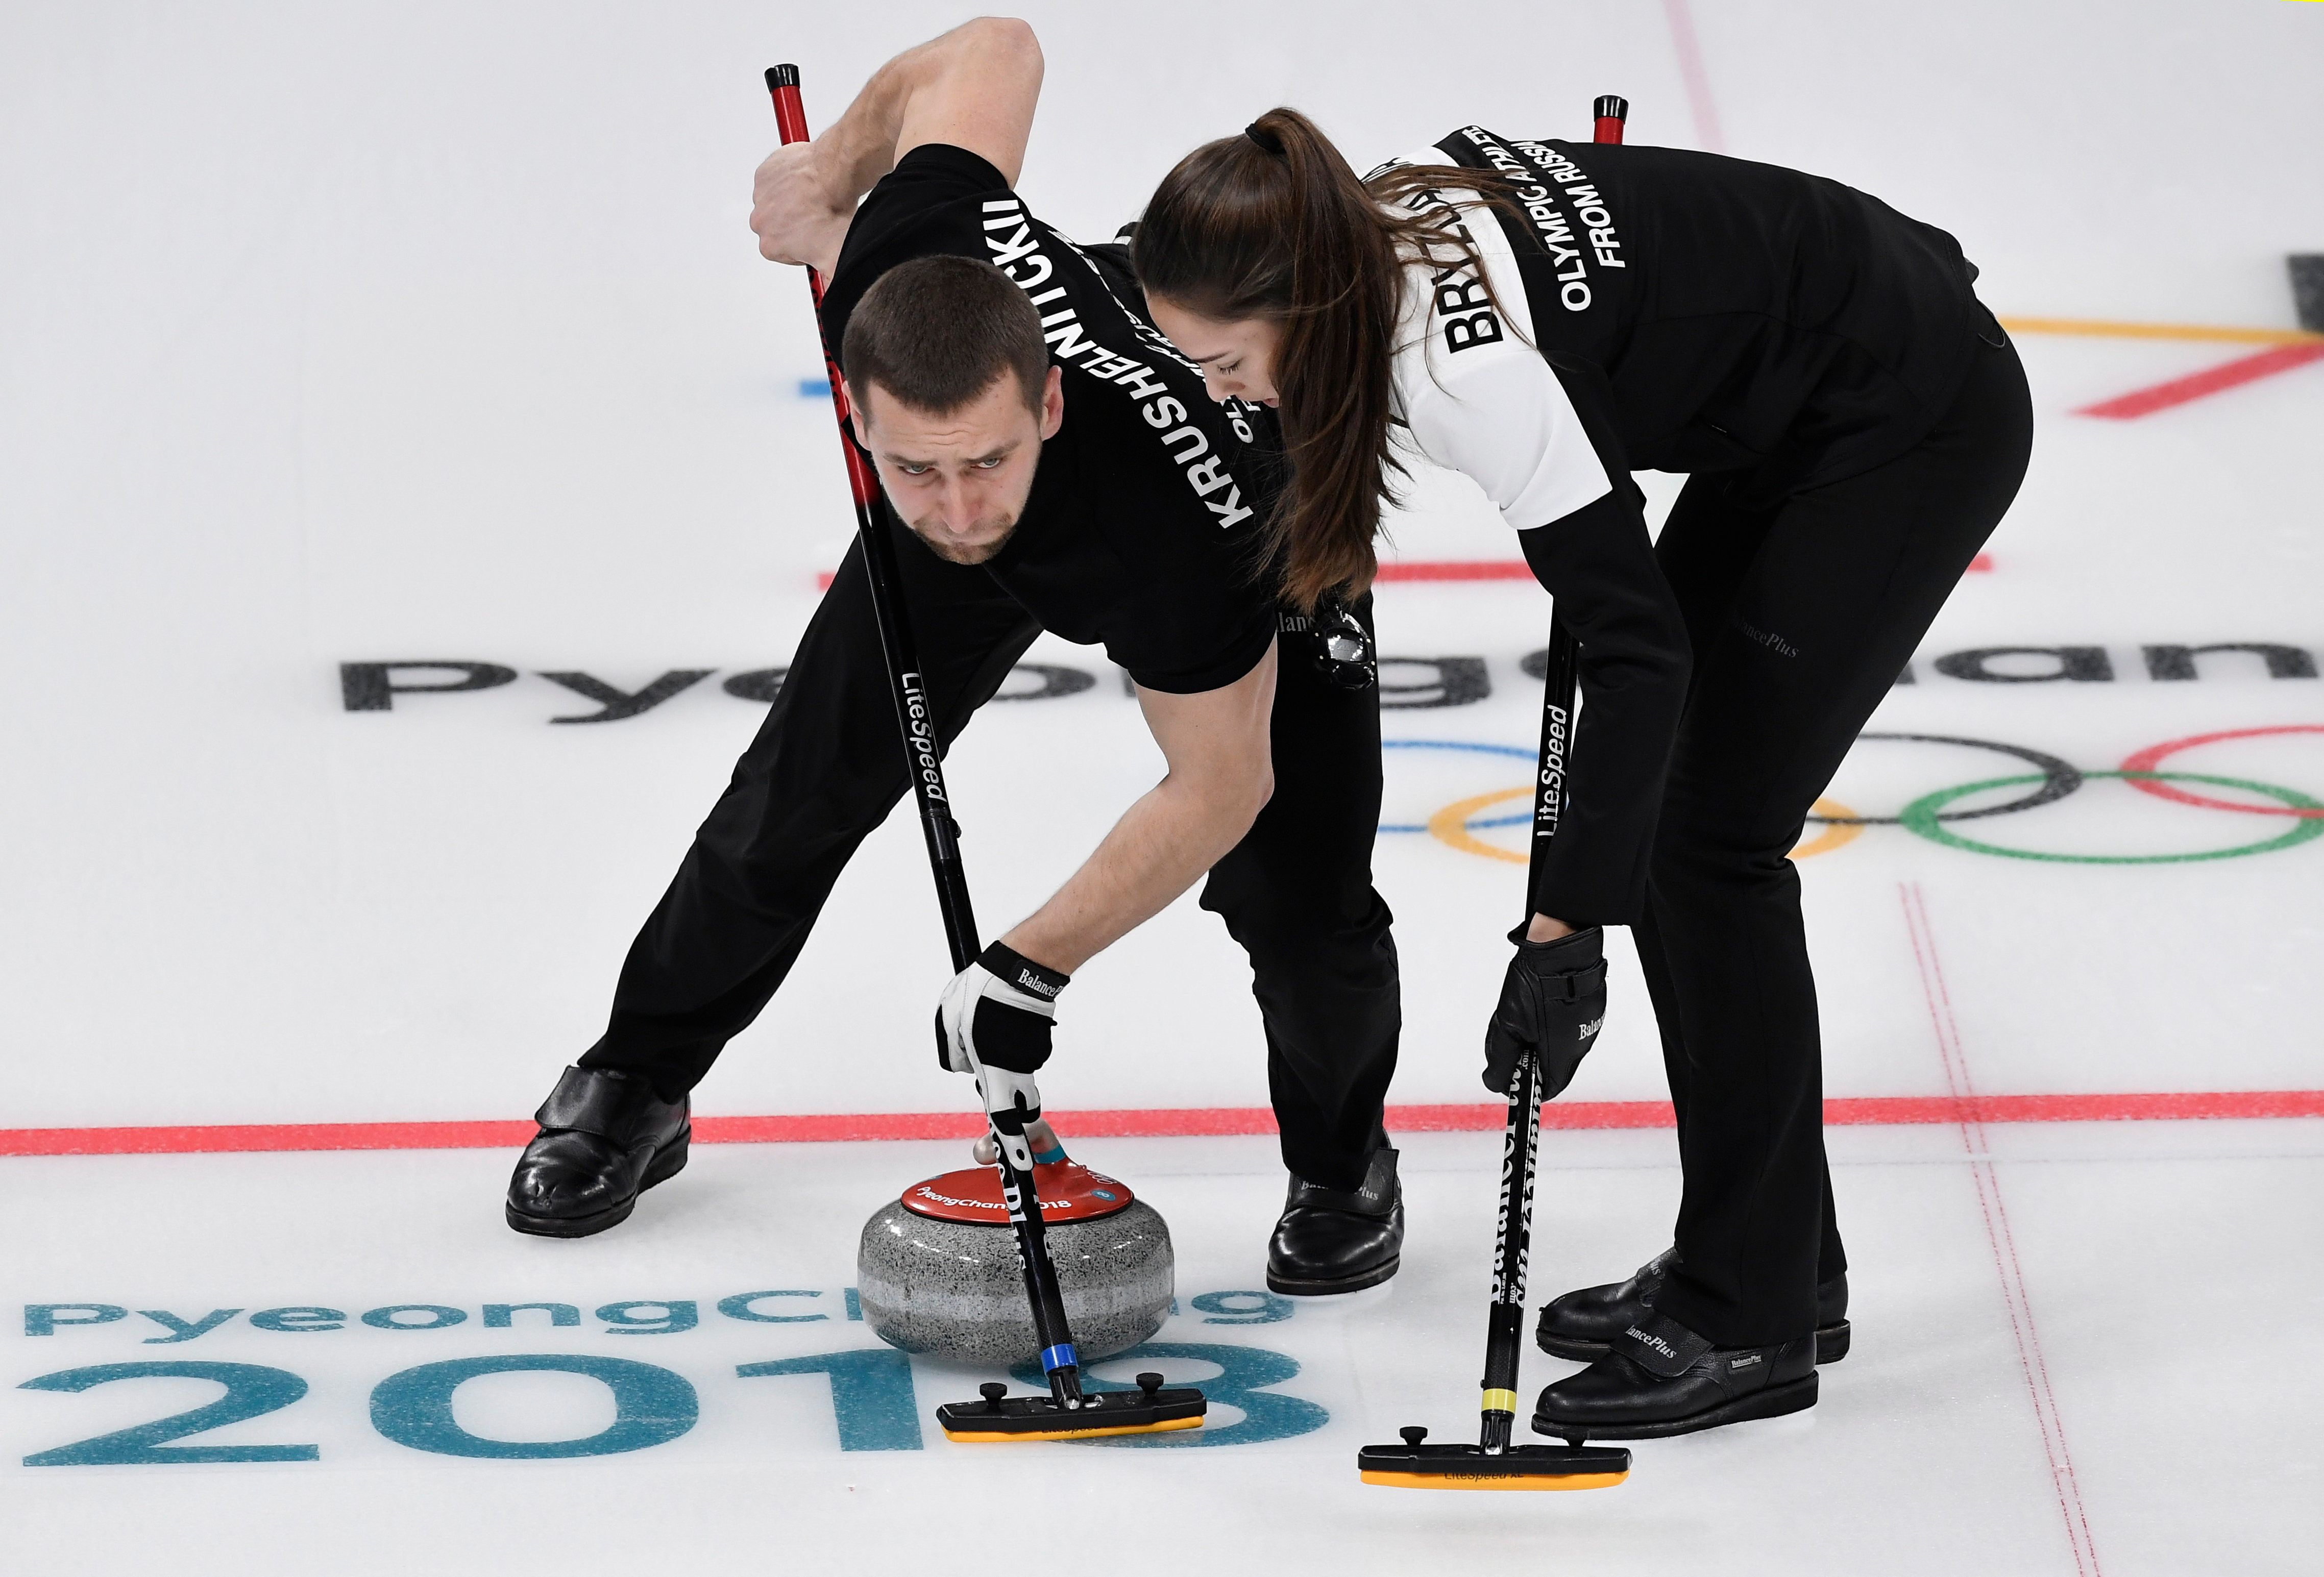 Curling – Pyeongchang 2018 Winter Olympics – Mixed Doubles Bronze Medal Match - Olympic Athletes from Russia v Norway - Gangneung Curling Center - Gangneung, South Korea – February 13, 2018 - Alexander Krushelnitsky and Anastasia Bryzgalova, Olympic athletes from Russia, sweep. REUTERS/Toby Melville